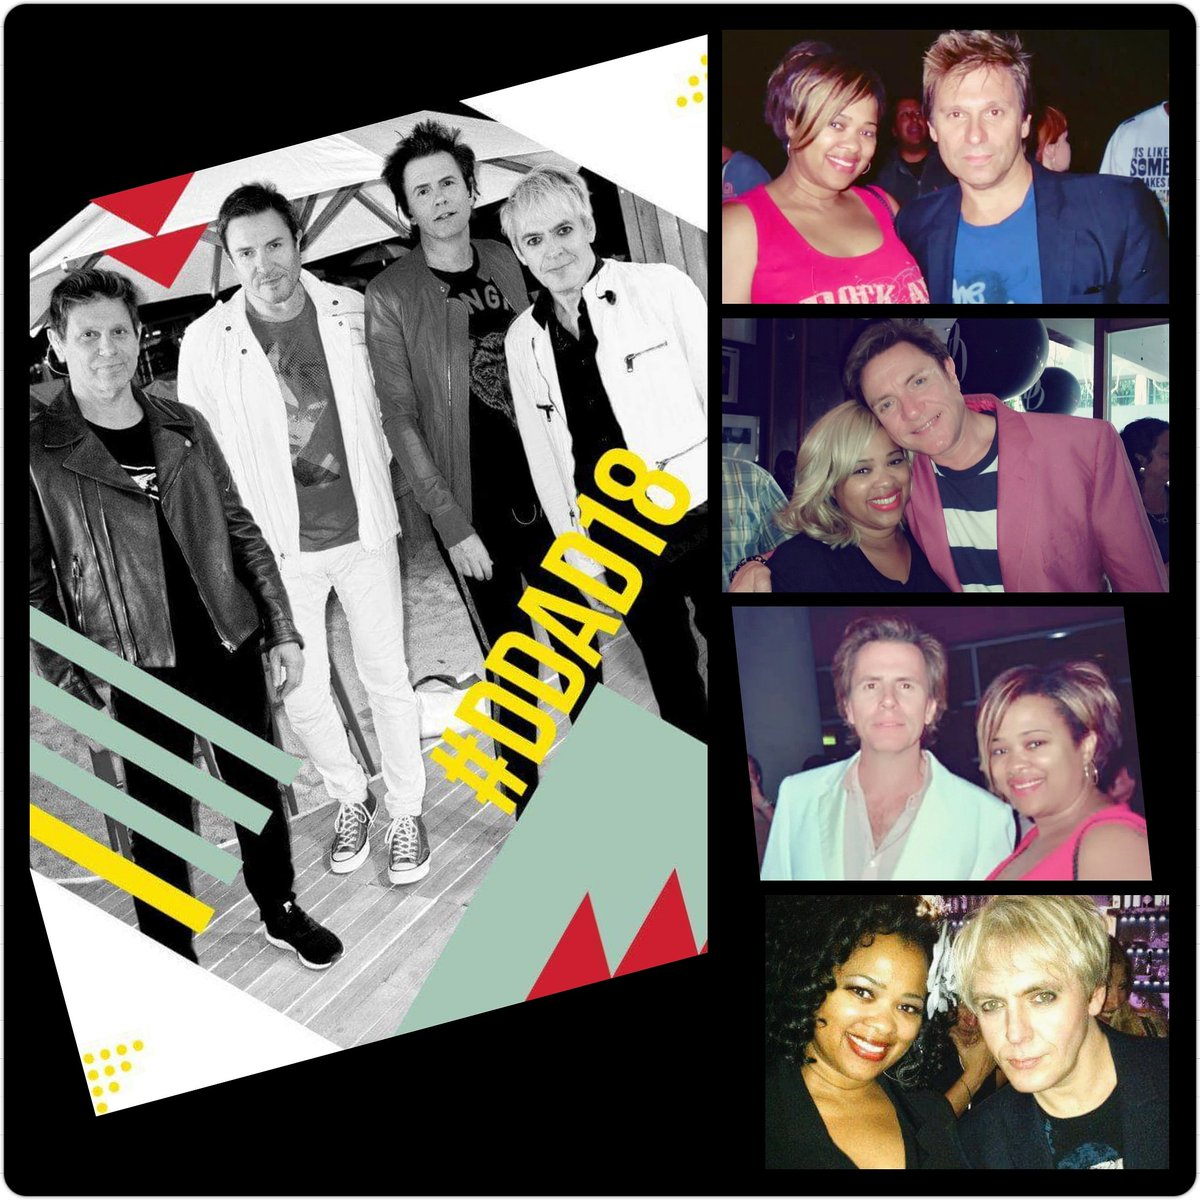 Happy Duran Duran Appreciation Day!!! thank you @duranduran for making my life brighter and for being so nice to me throughout the years!! @SimonJCLeBON @thisistherealJT #nickrhodes #rogertaylor #DDAD18 <br>http://pic.twitter.com/TPxvROEILU